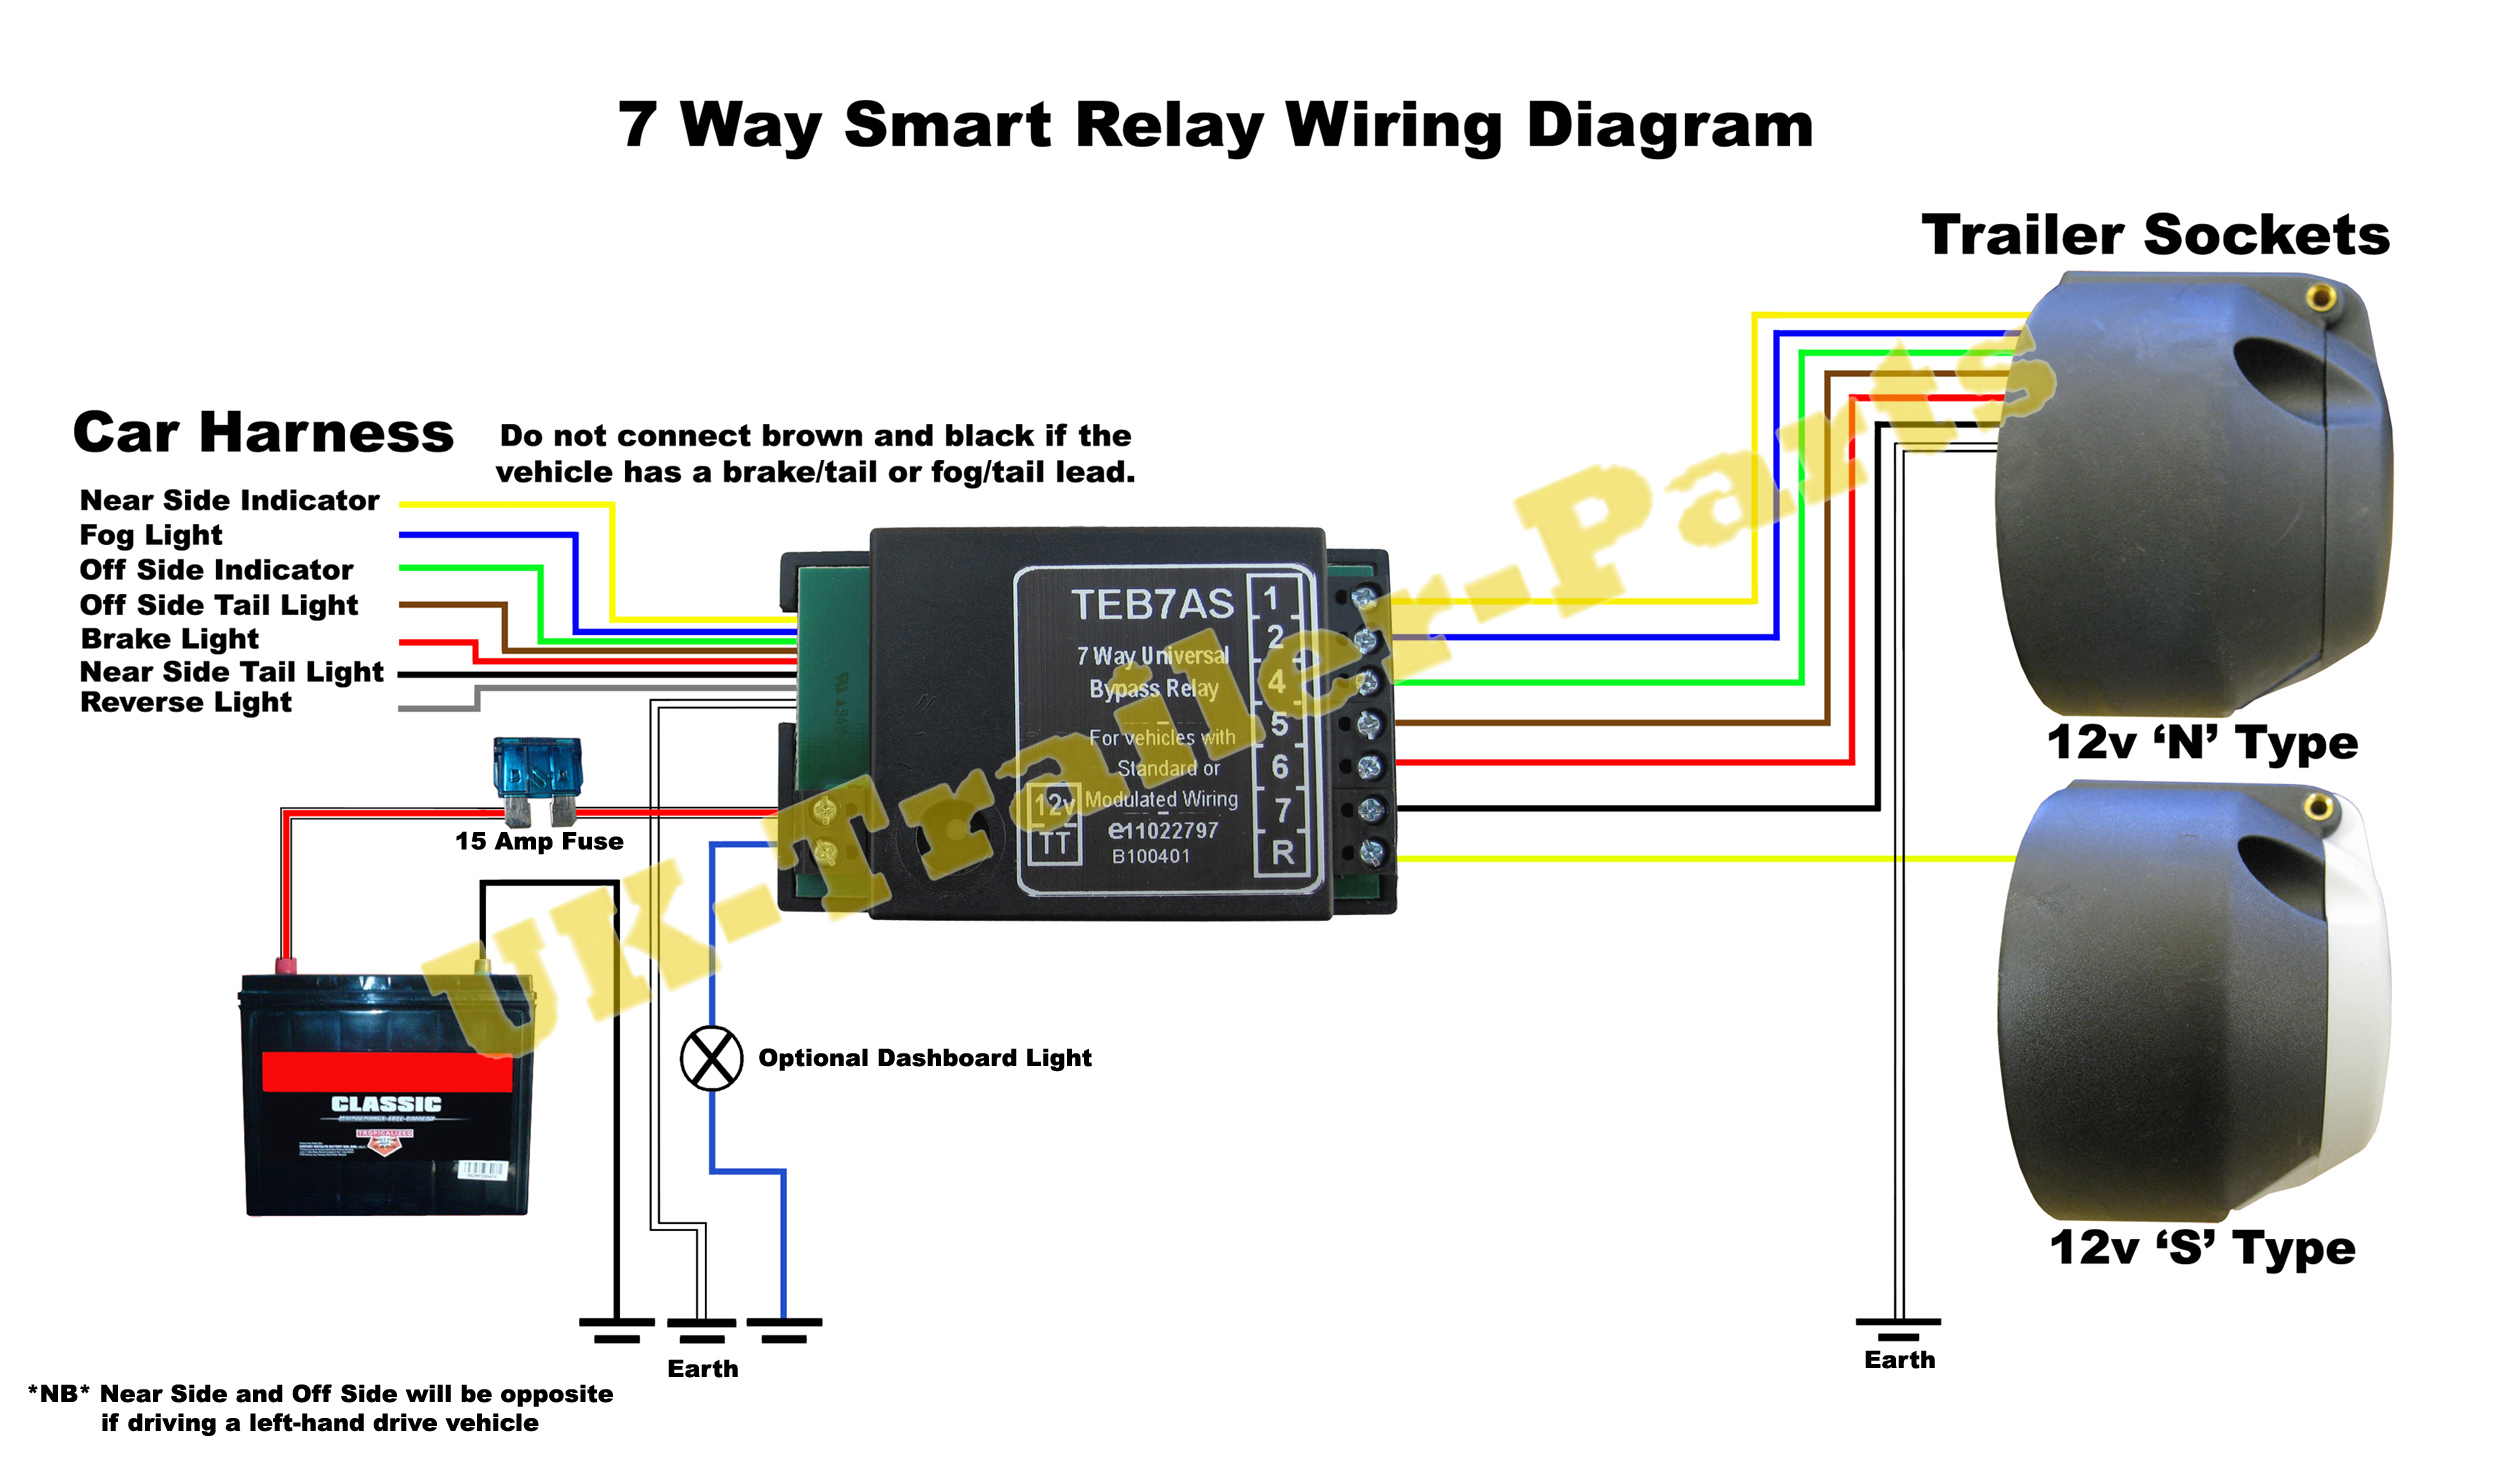 7 Way Universal Bypass Relay Wiring Diagram Uk Trailer Parts Ecm 2006 Touareg